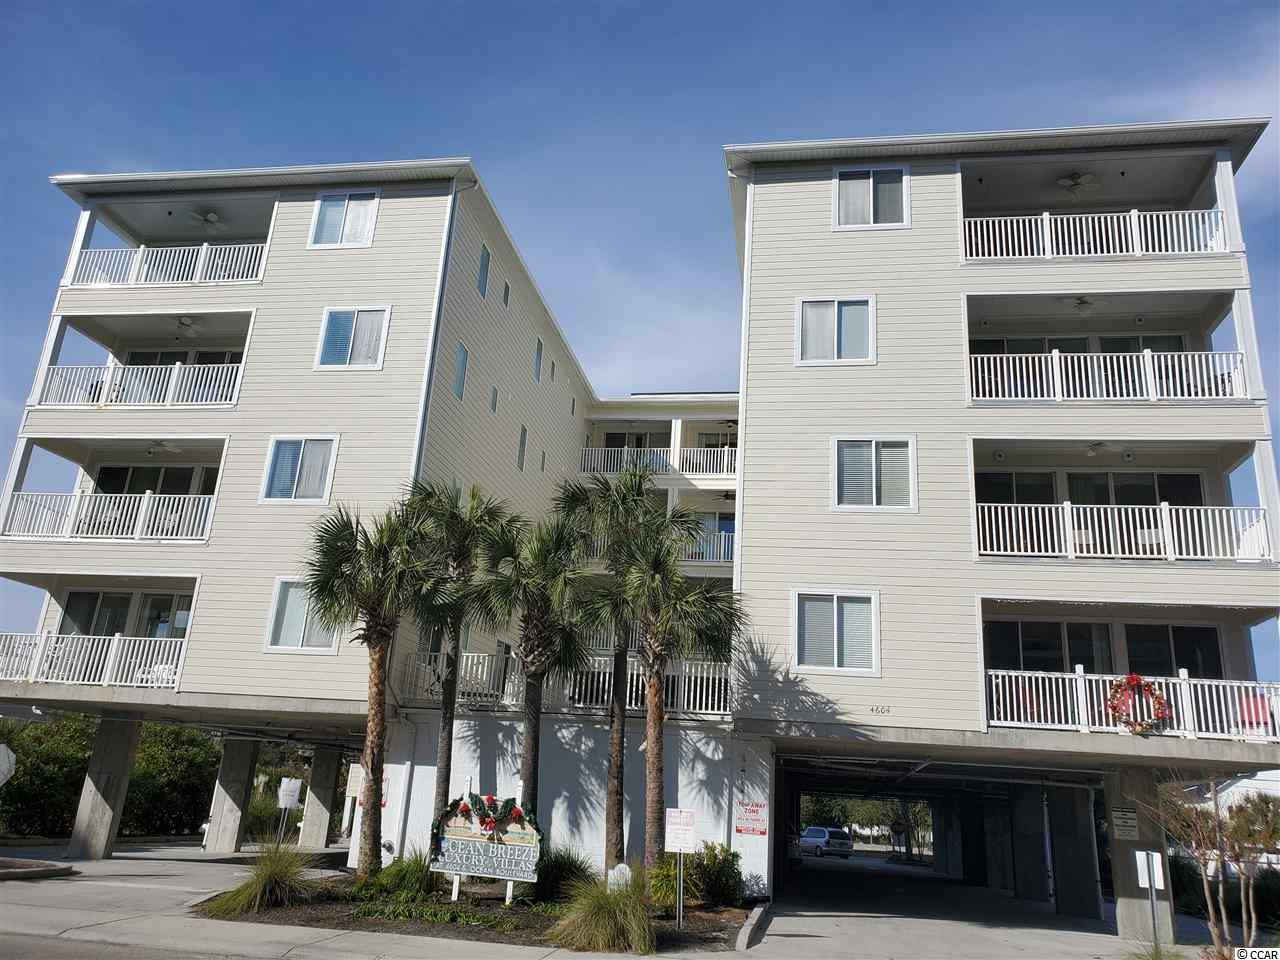 Watch the beautiful sunrise from your balcony in this large  4 bed, 4 and 1/2 Bath located in the Windy Hill section of Ocean Blvd.  Lots of entertaining for a large group with seating in the kitchen/dining combo for 18! Kitchen is fully furnished with stainless appliances and an extra large refrigerator/freezer.  There is a second balcony off dining and a bedroom overlooking the pool besides the large one with the beach view! Living room adjoins an extra large game room with a wet/bar and beverage frig. The Master has a large walk in closet and the bath has dual sinks and jacuzzi tub. Each bedroom has its own bathroom and the powder room in the hall for guests. Beach access is just across the street. Located minutes away from Barefoot Landing, restaurants, shopping and golf! Would make a great vacation home, investment property or full time residence.  All measurements are approximate and to be verified by buyer.